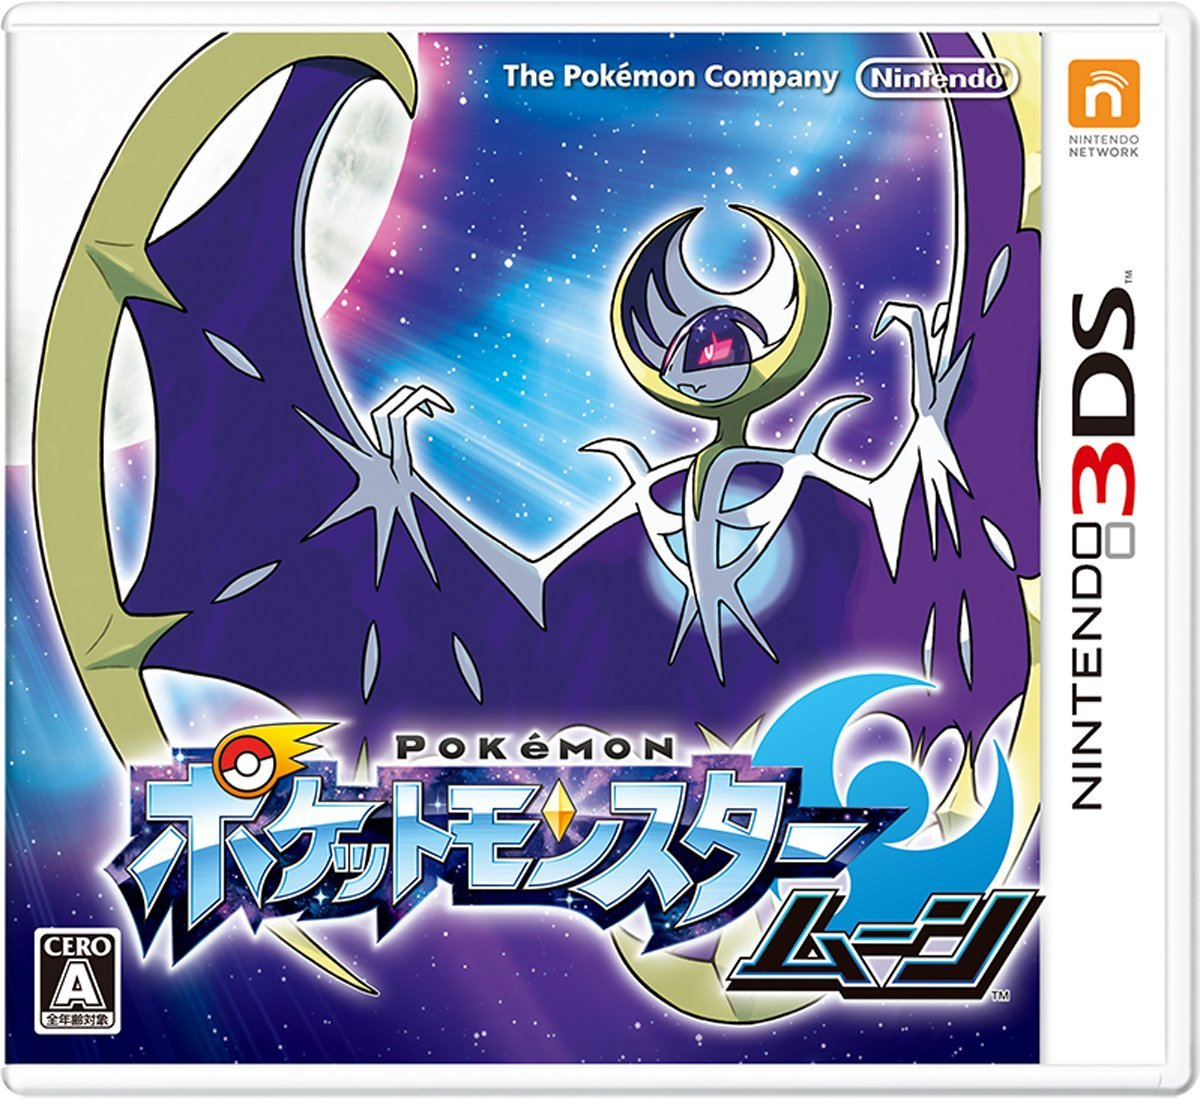 3DS - Pokémon Moon JPN